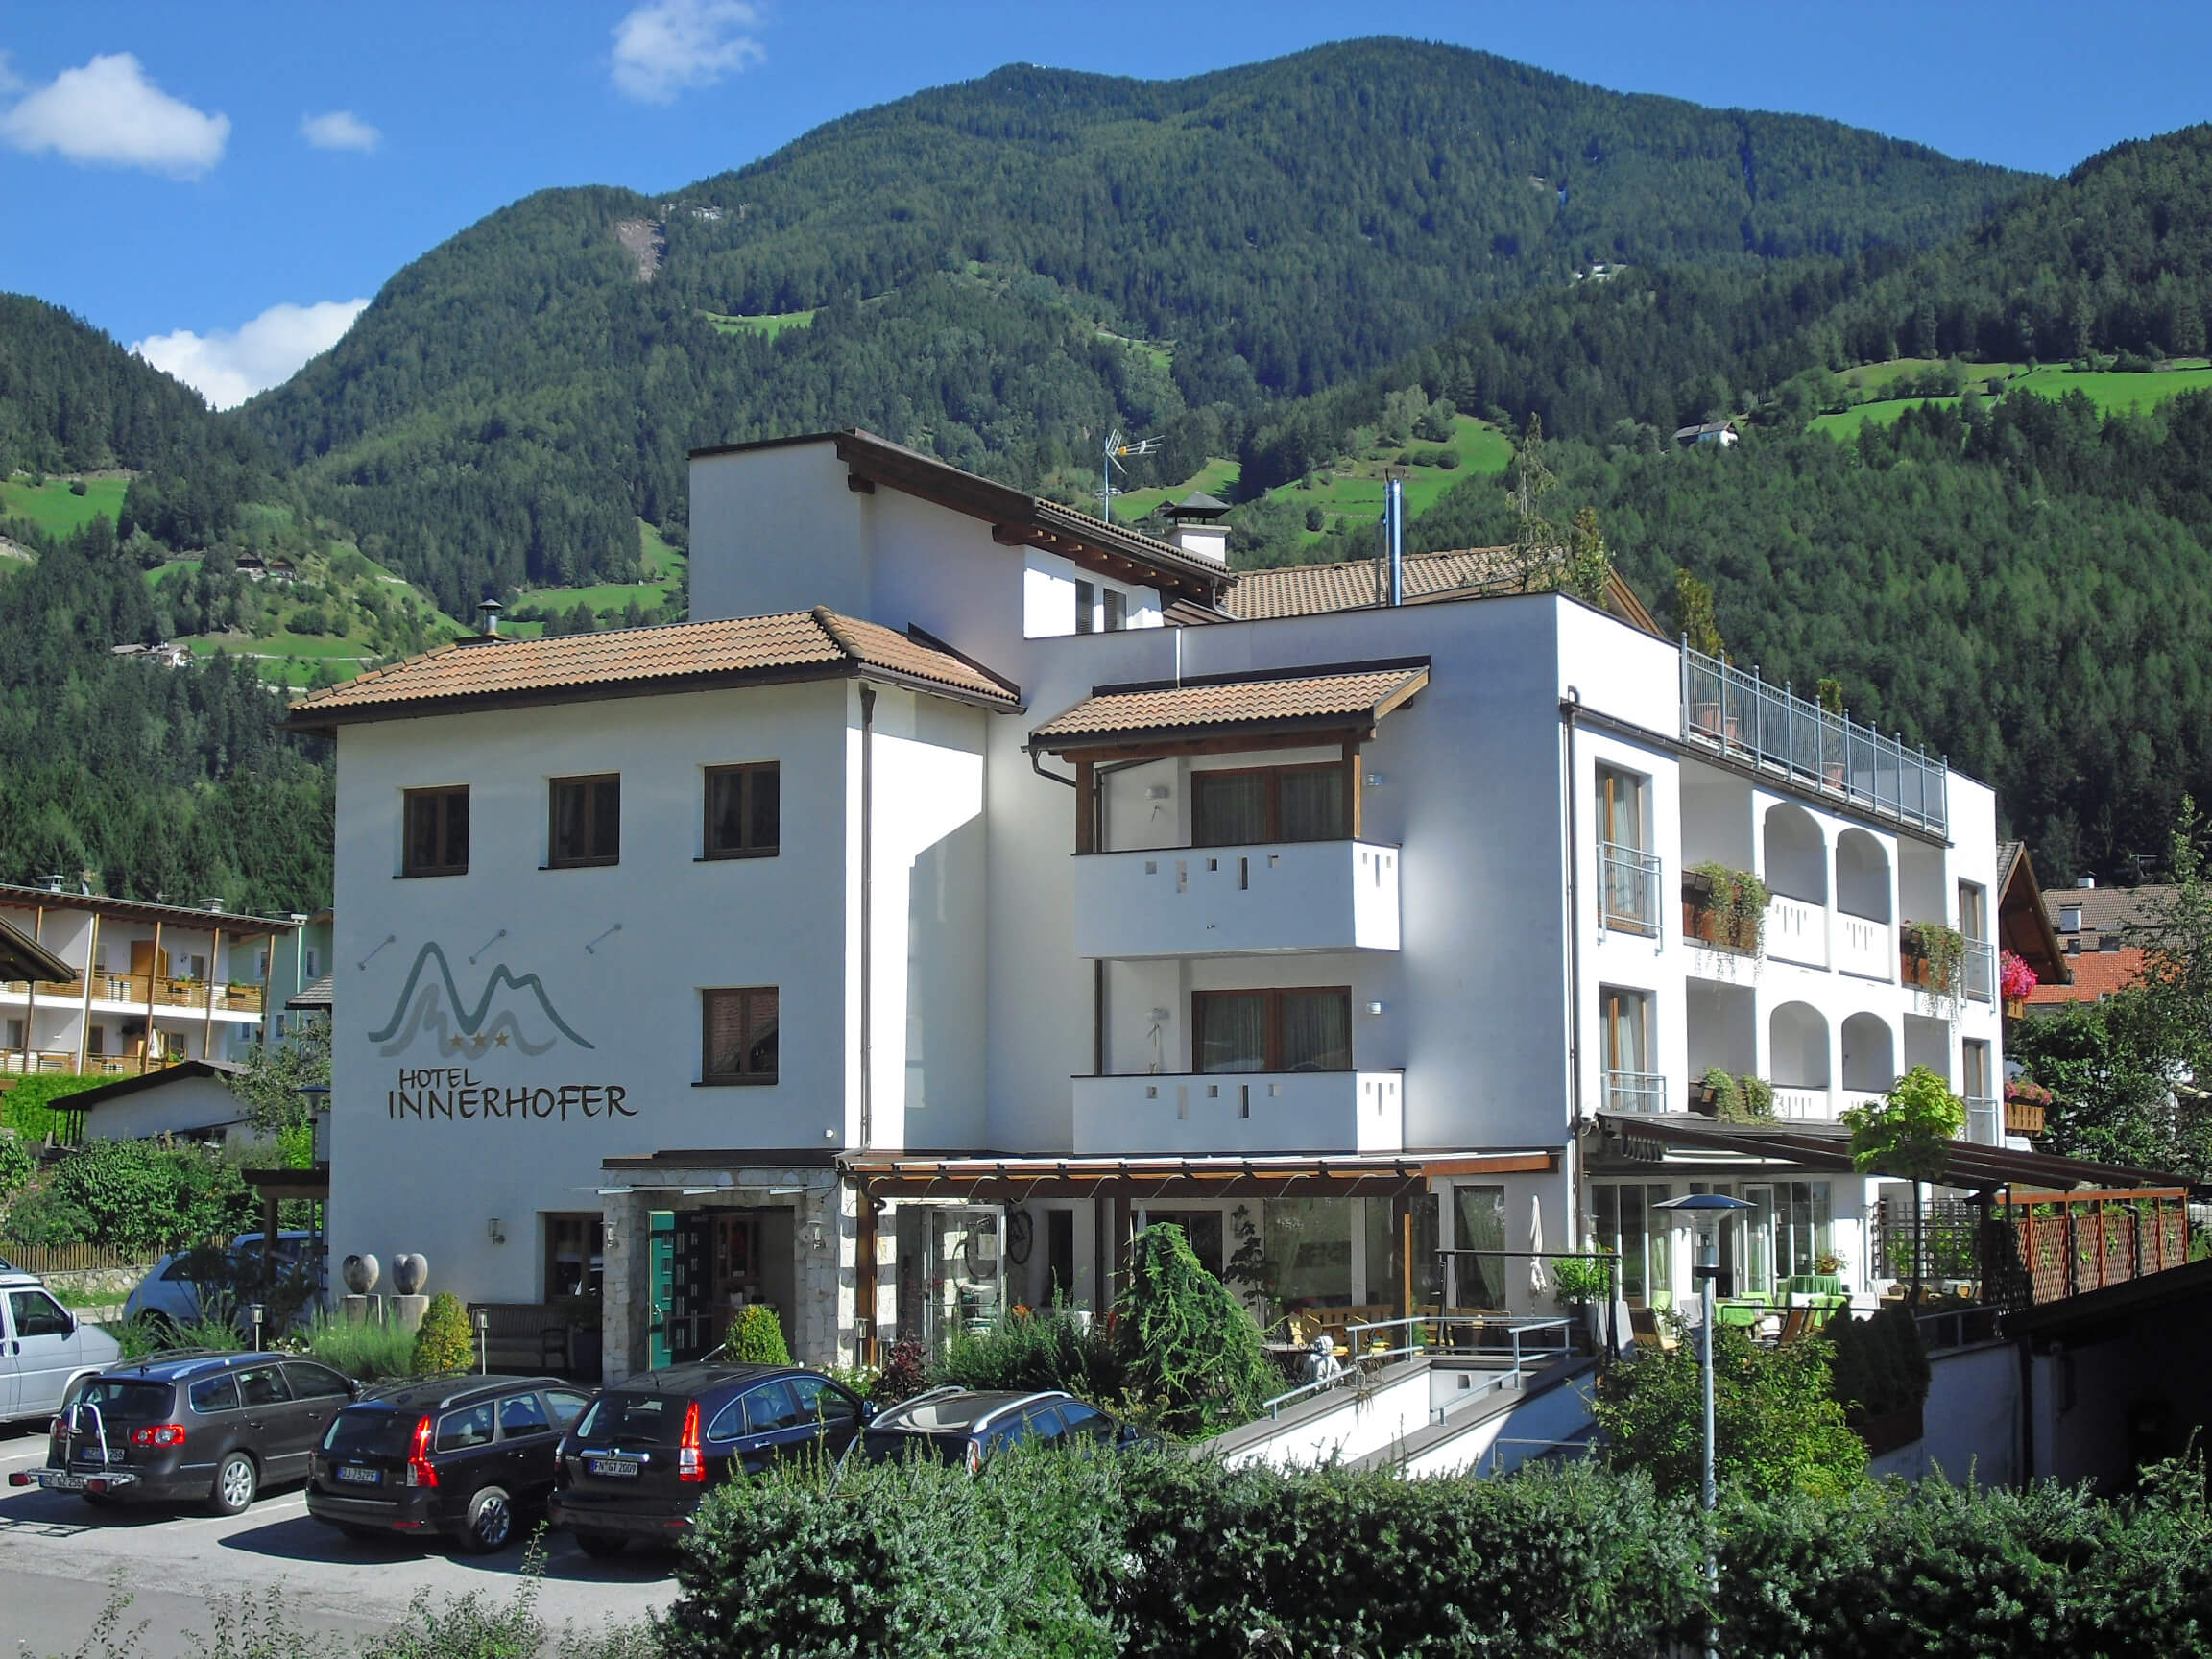 Hotel Innerhofer in Südtirol in Italien